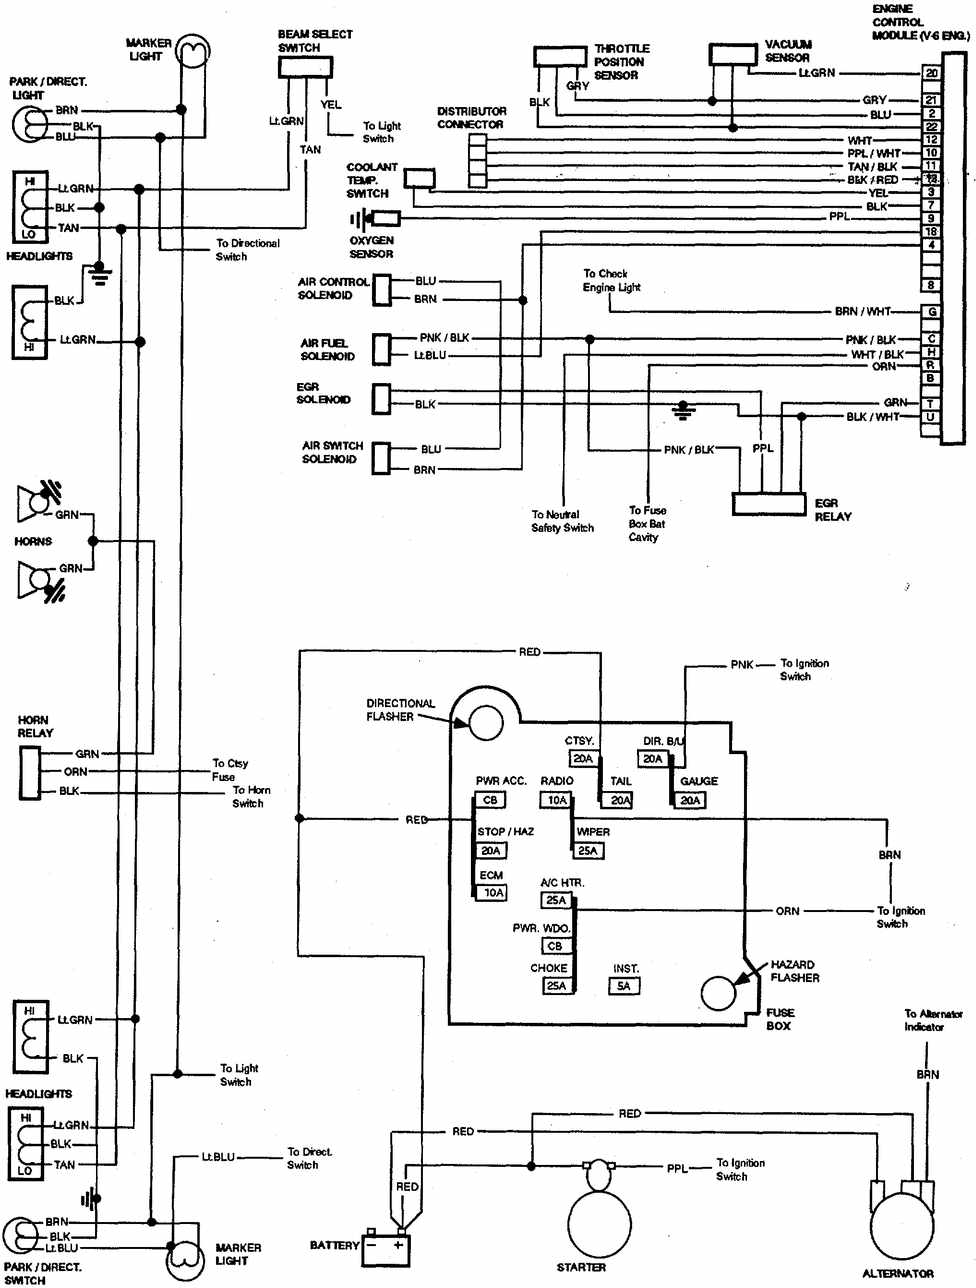 medium resolution of 1978 chevy turn signal wiring diagram detailed schematics diagram rh antonartgallery com 1975 chevy caprice wiring